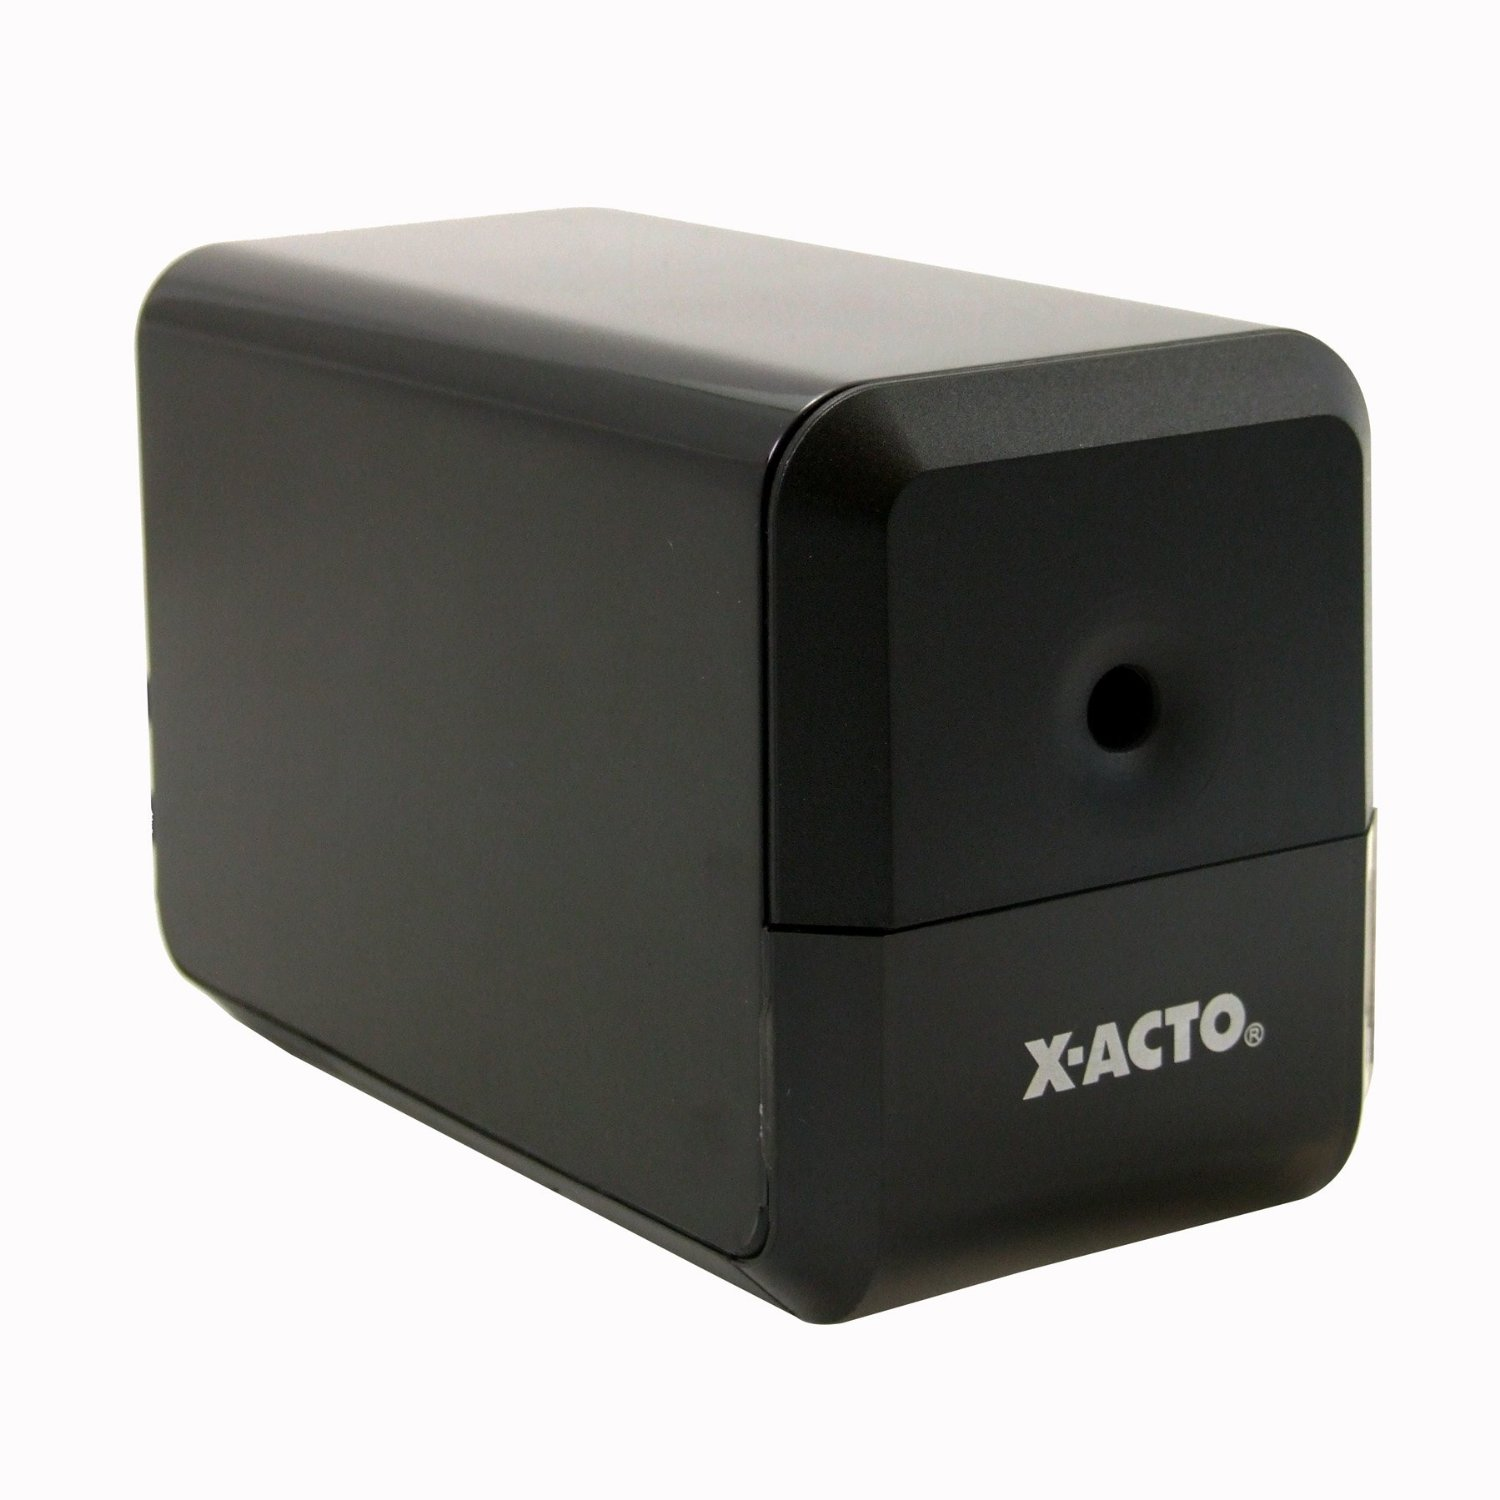 X Acto Electric Pencil Sharpener 1818 Review